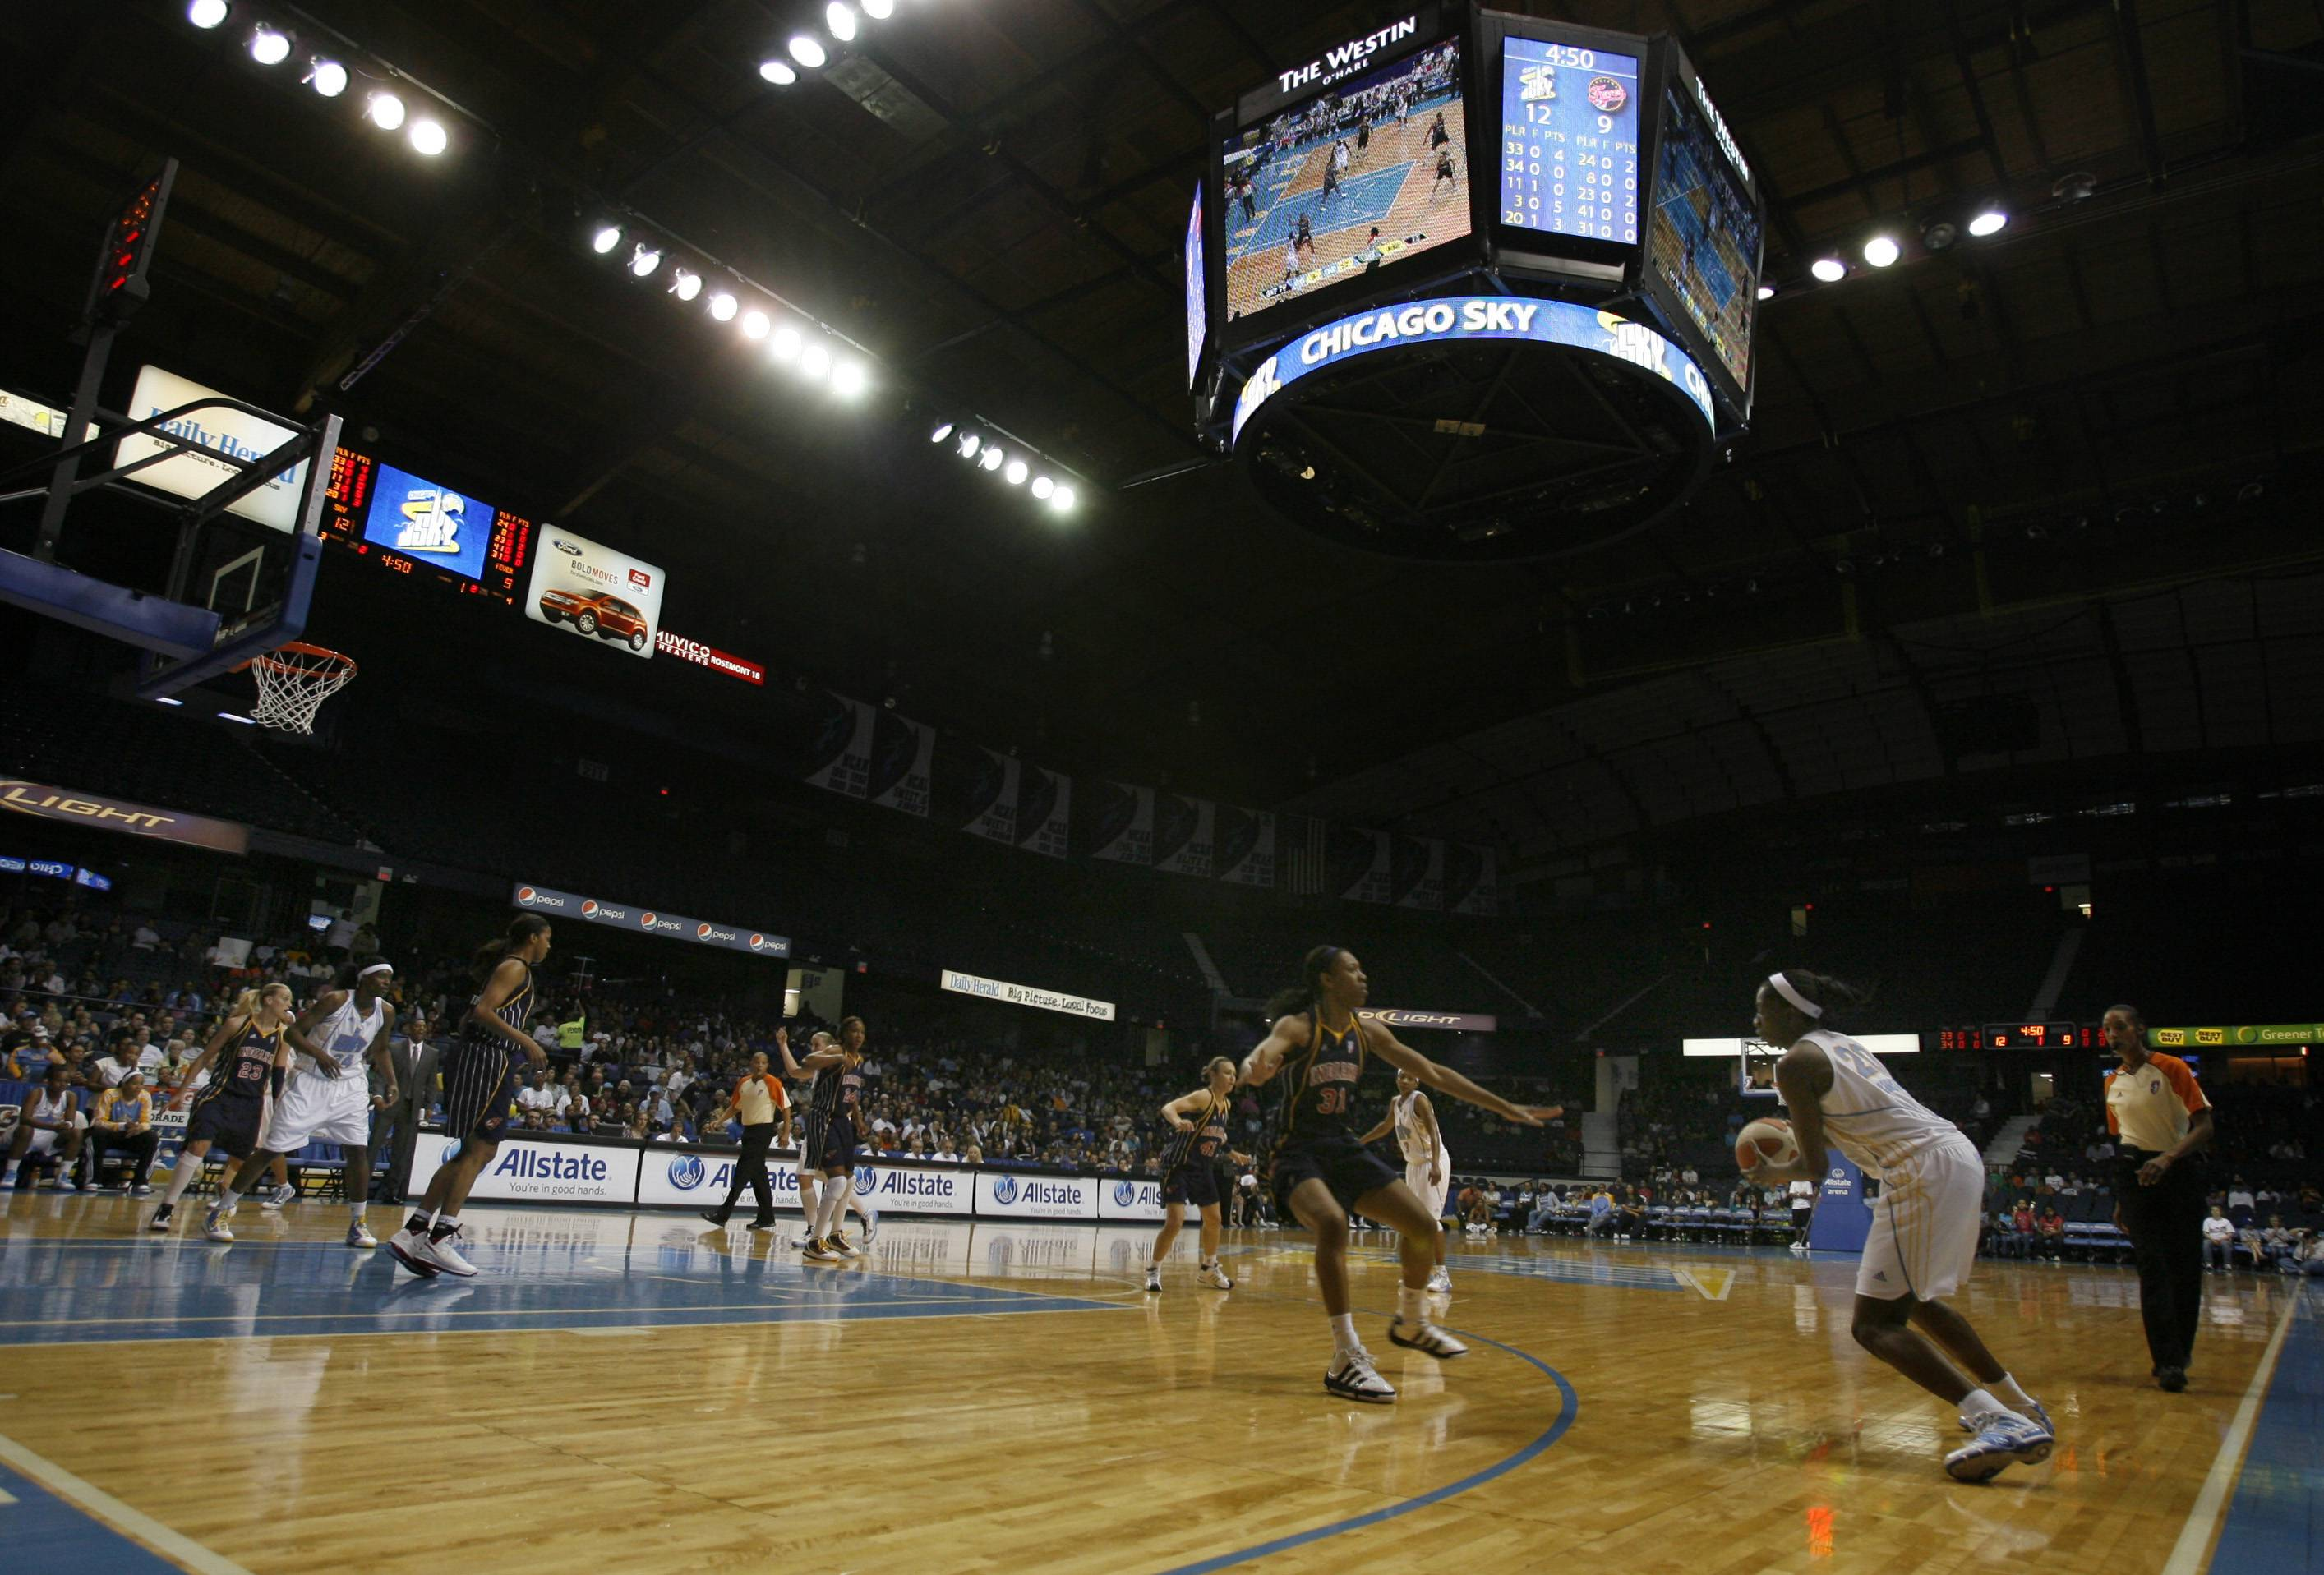 Chicago Sky will play in Rosemont for 3 more years